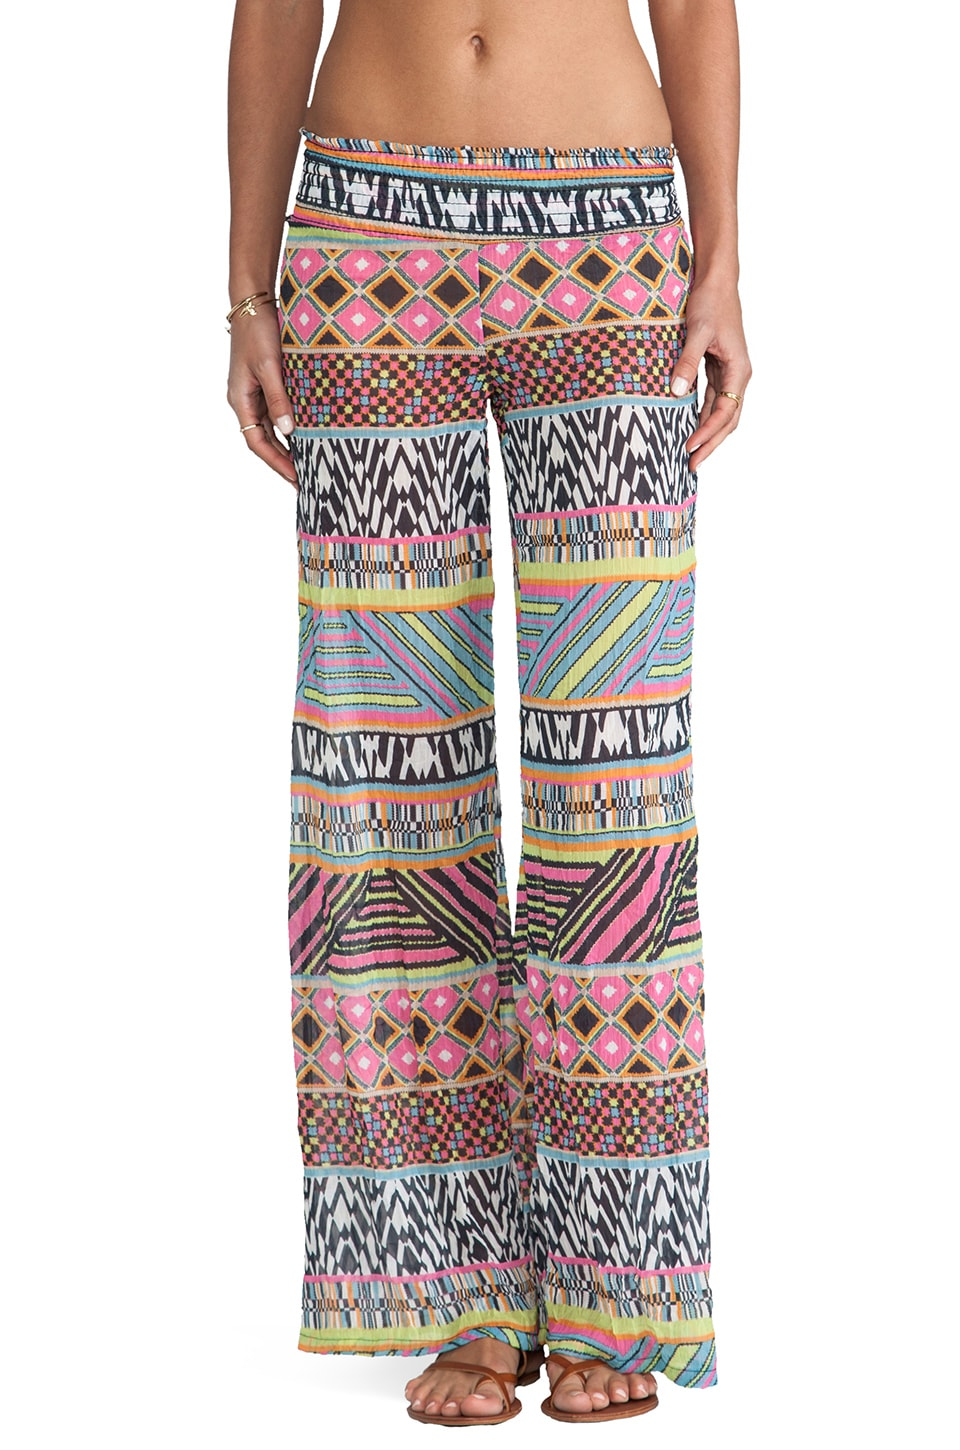 Bettinis Aztec Pants in Multi Print